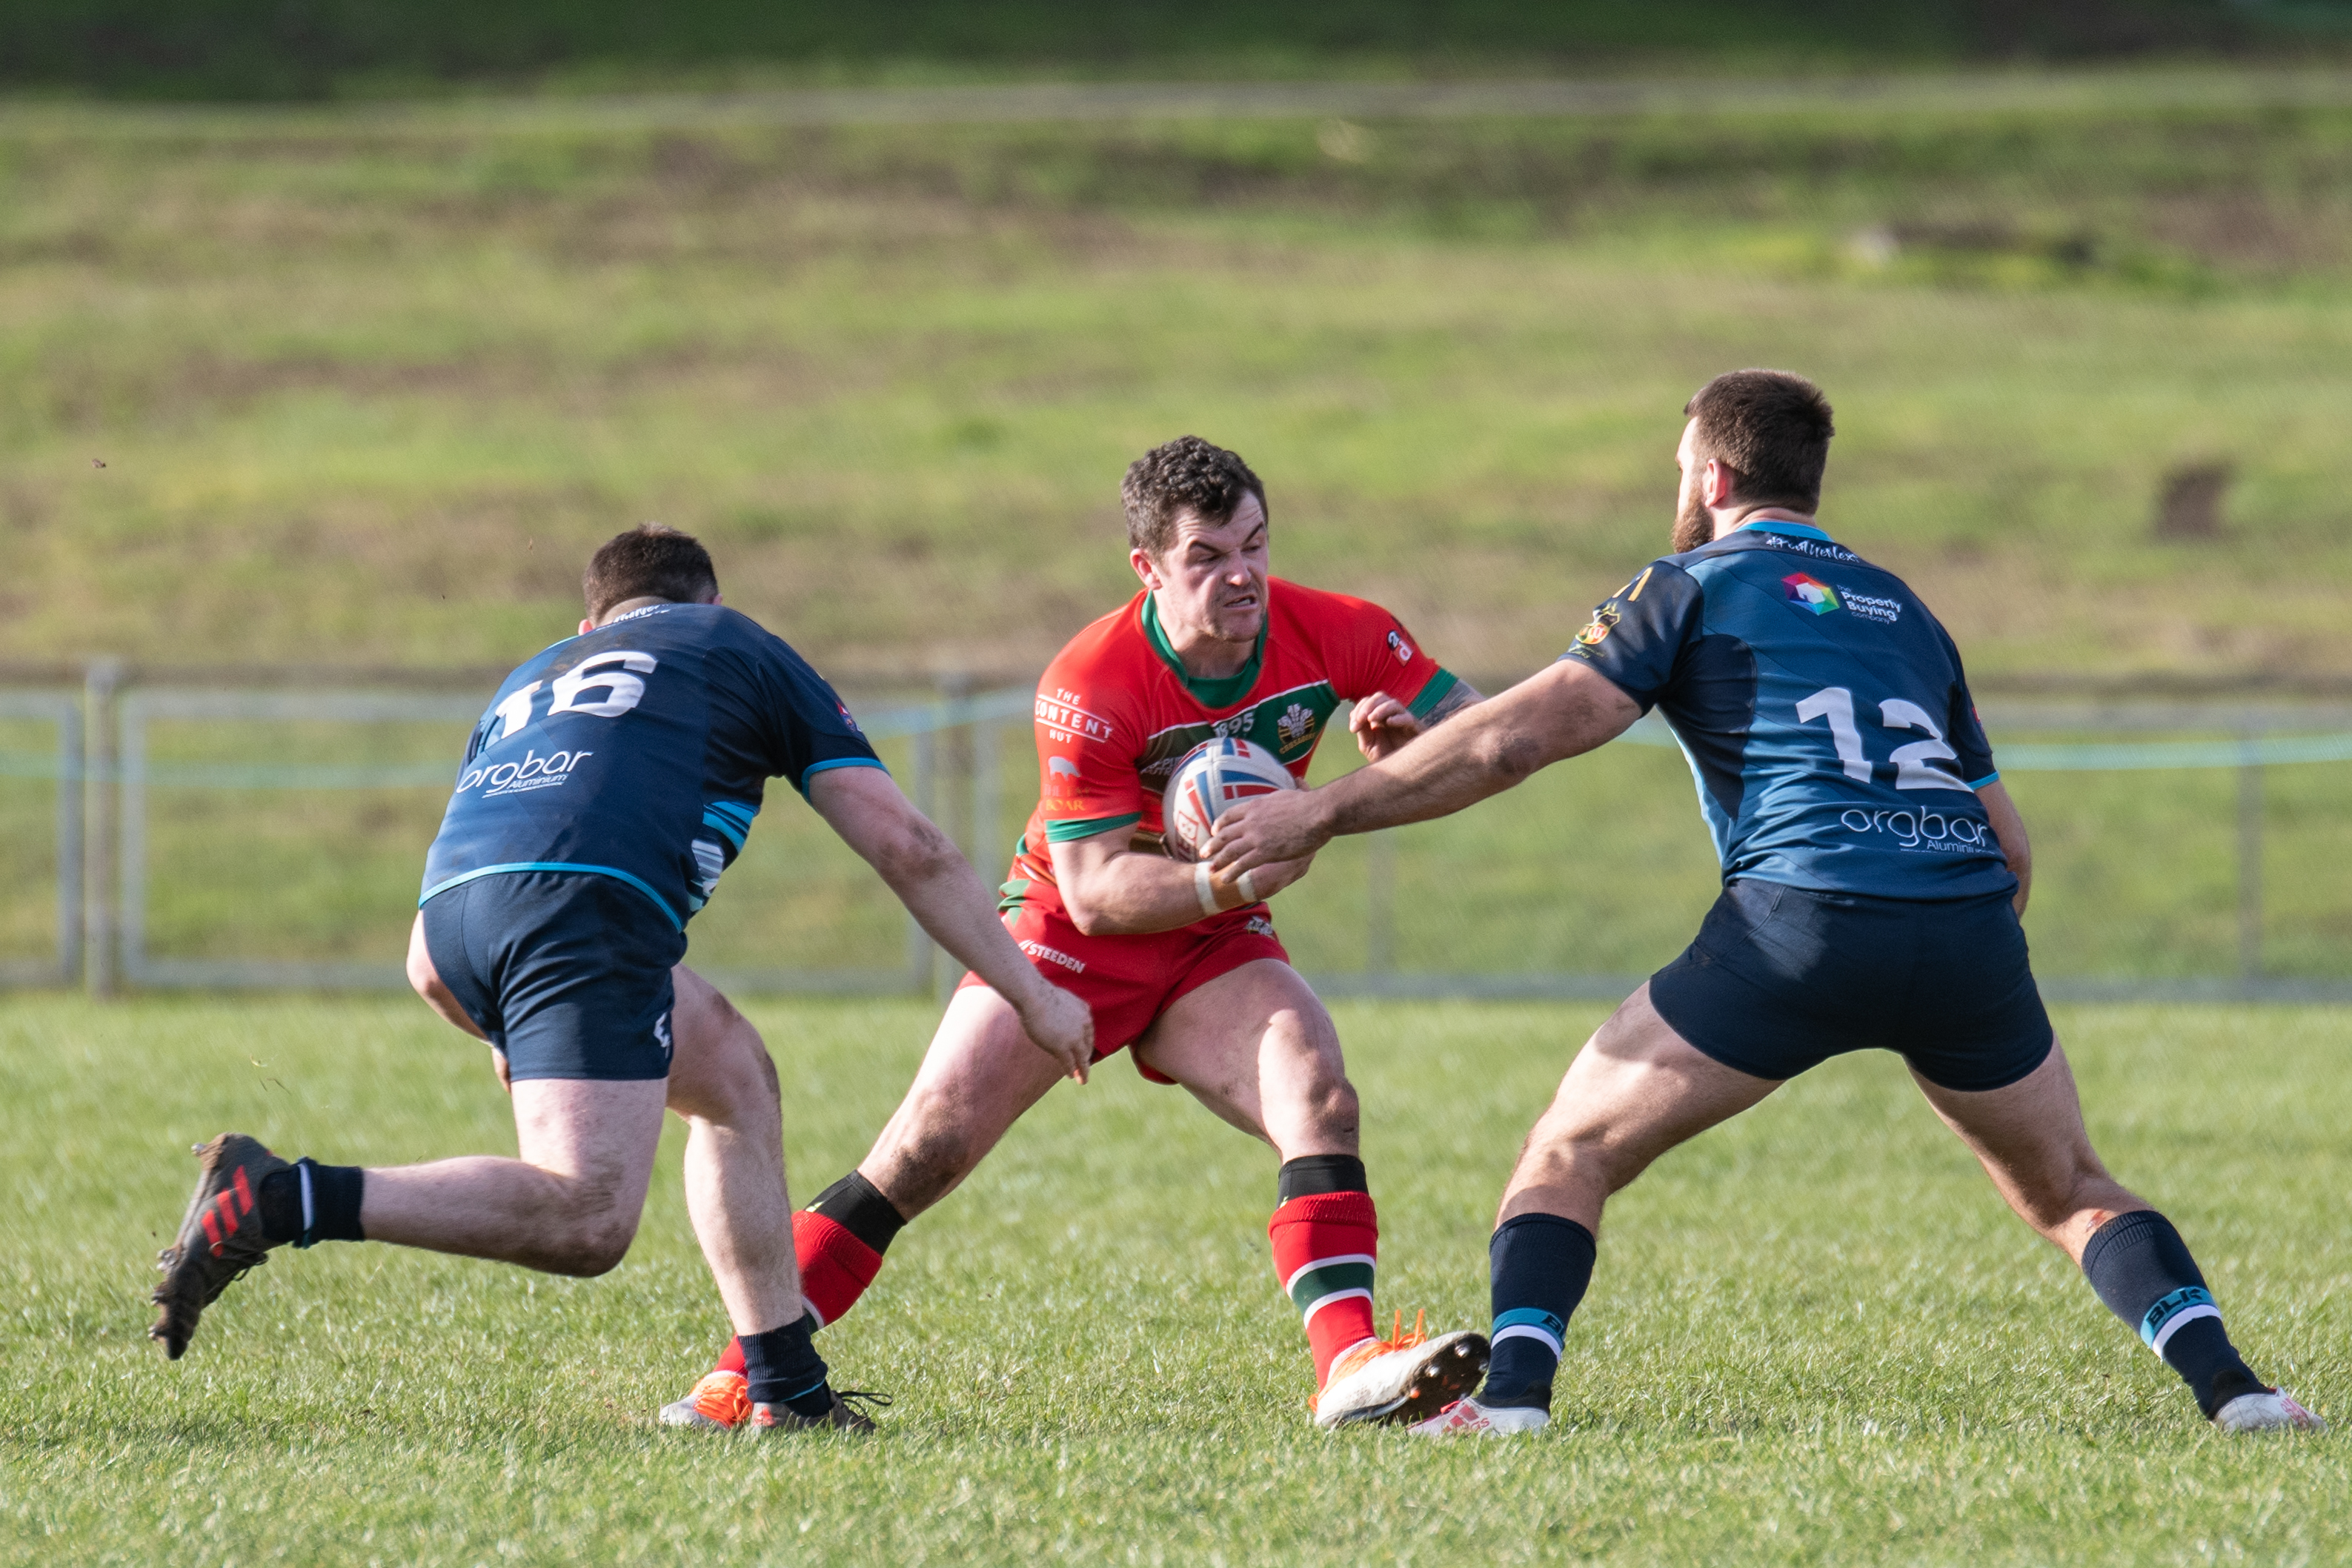 Report: North Wales Crusaders 24-16 Coventry Bears